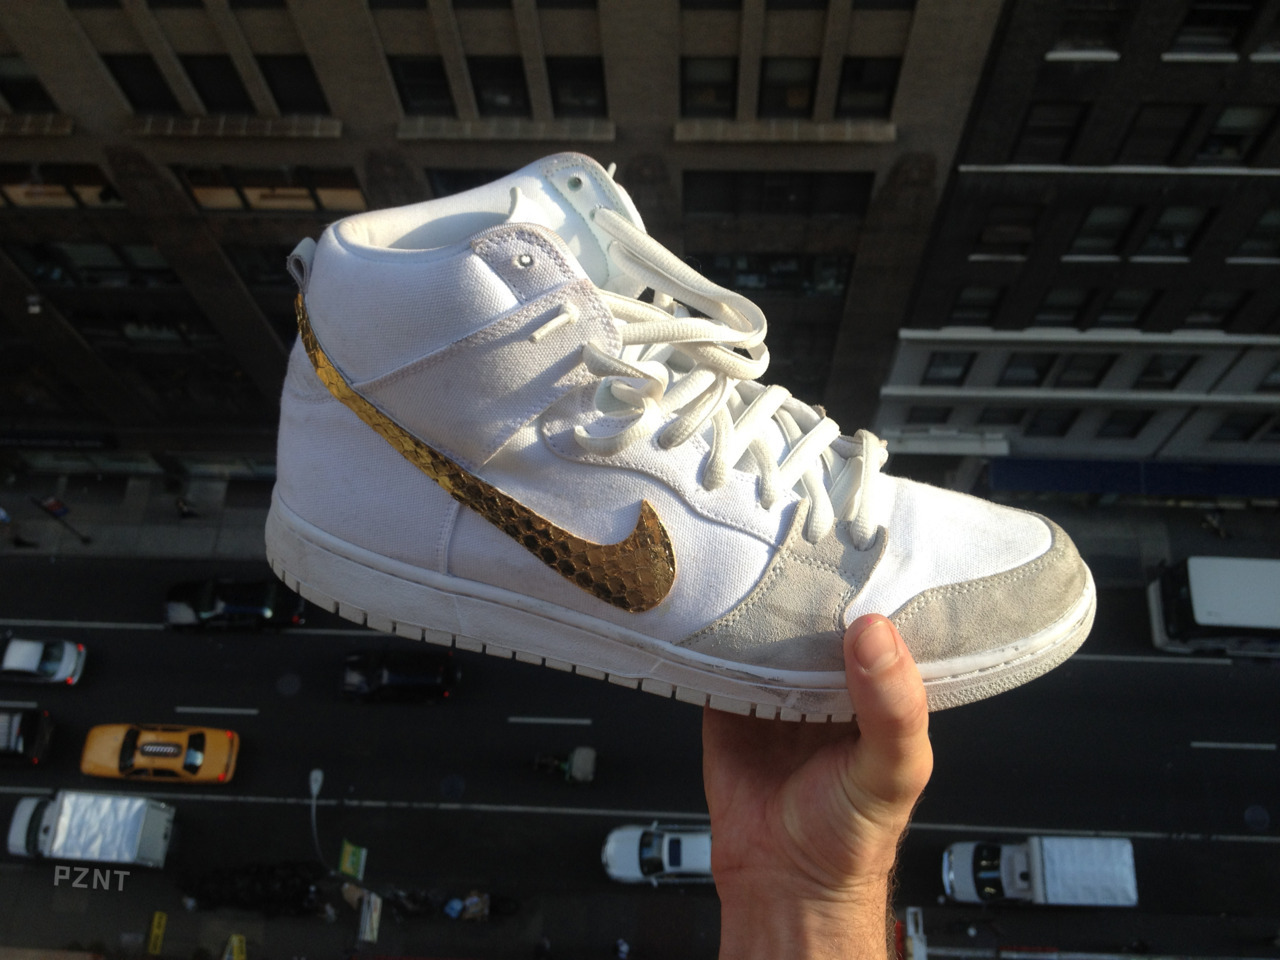 Embellishing SB dunks with python for Sir Kensington himself… The other three swooshes from the pair will be posted soon. PZNT